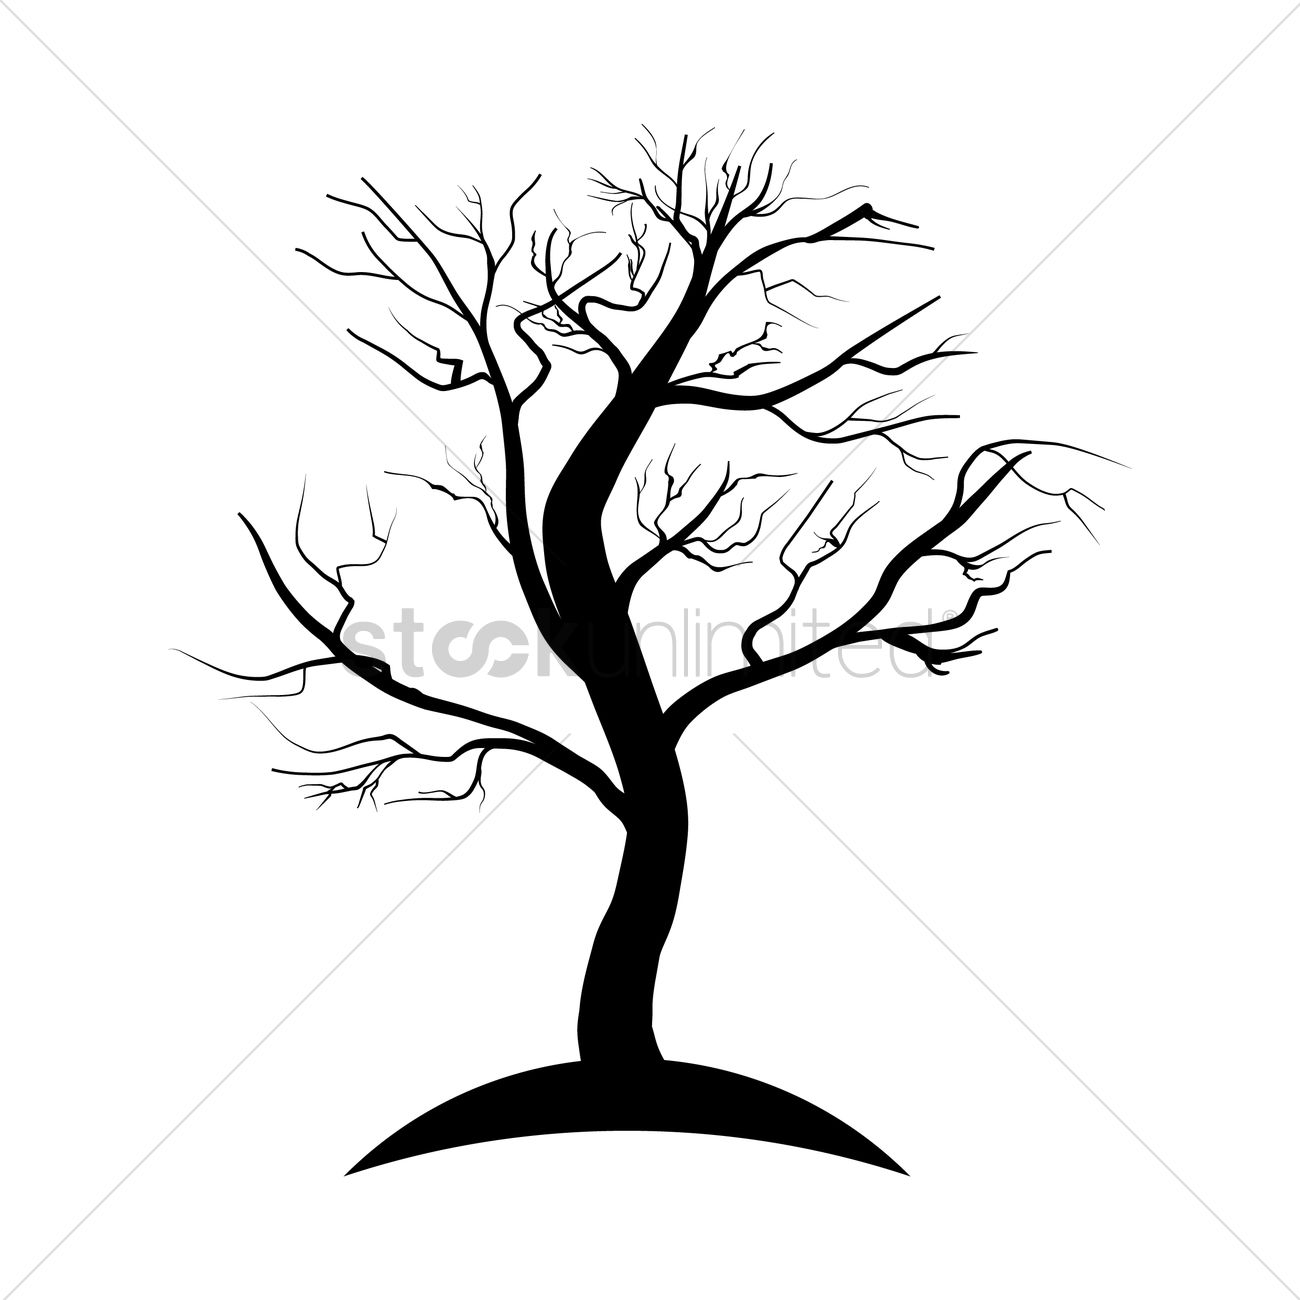 dead tree silhouette vector image 1903005 stockunlimited rh stockunlimited com dead tree vector image dead tree vector png